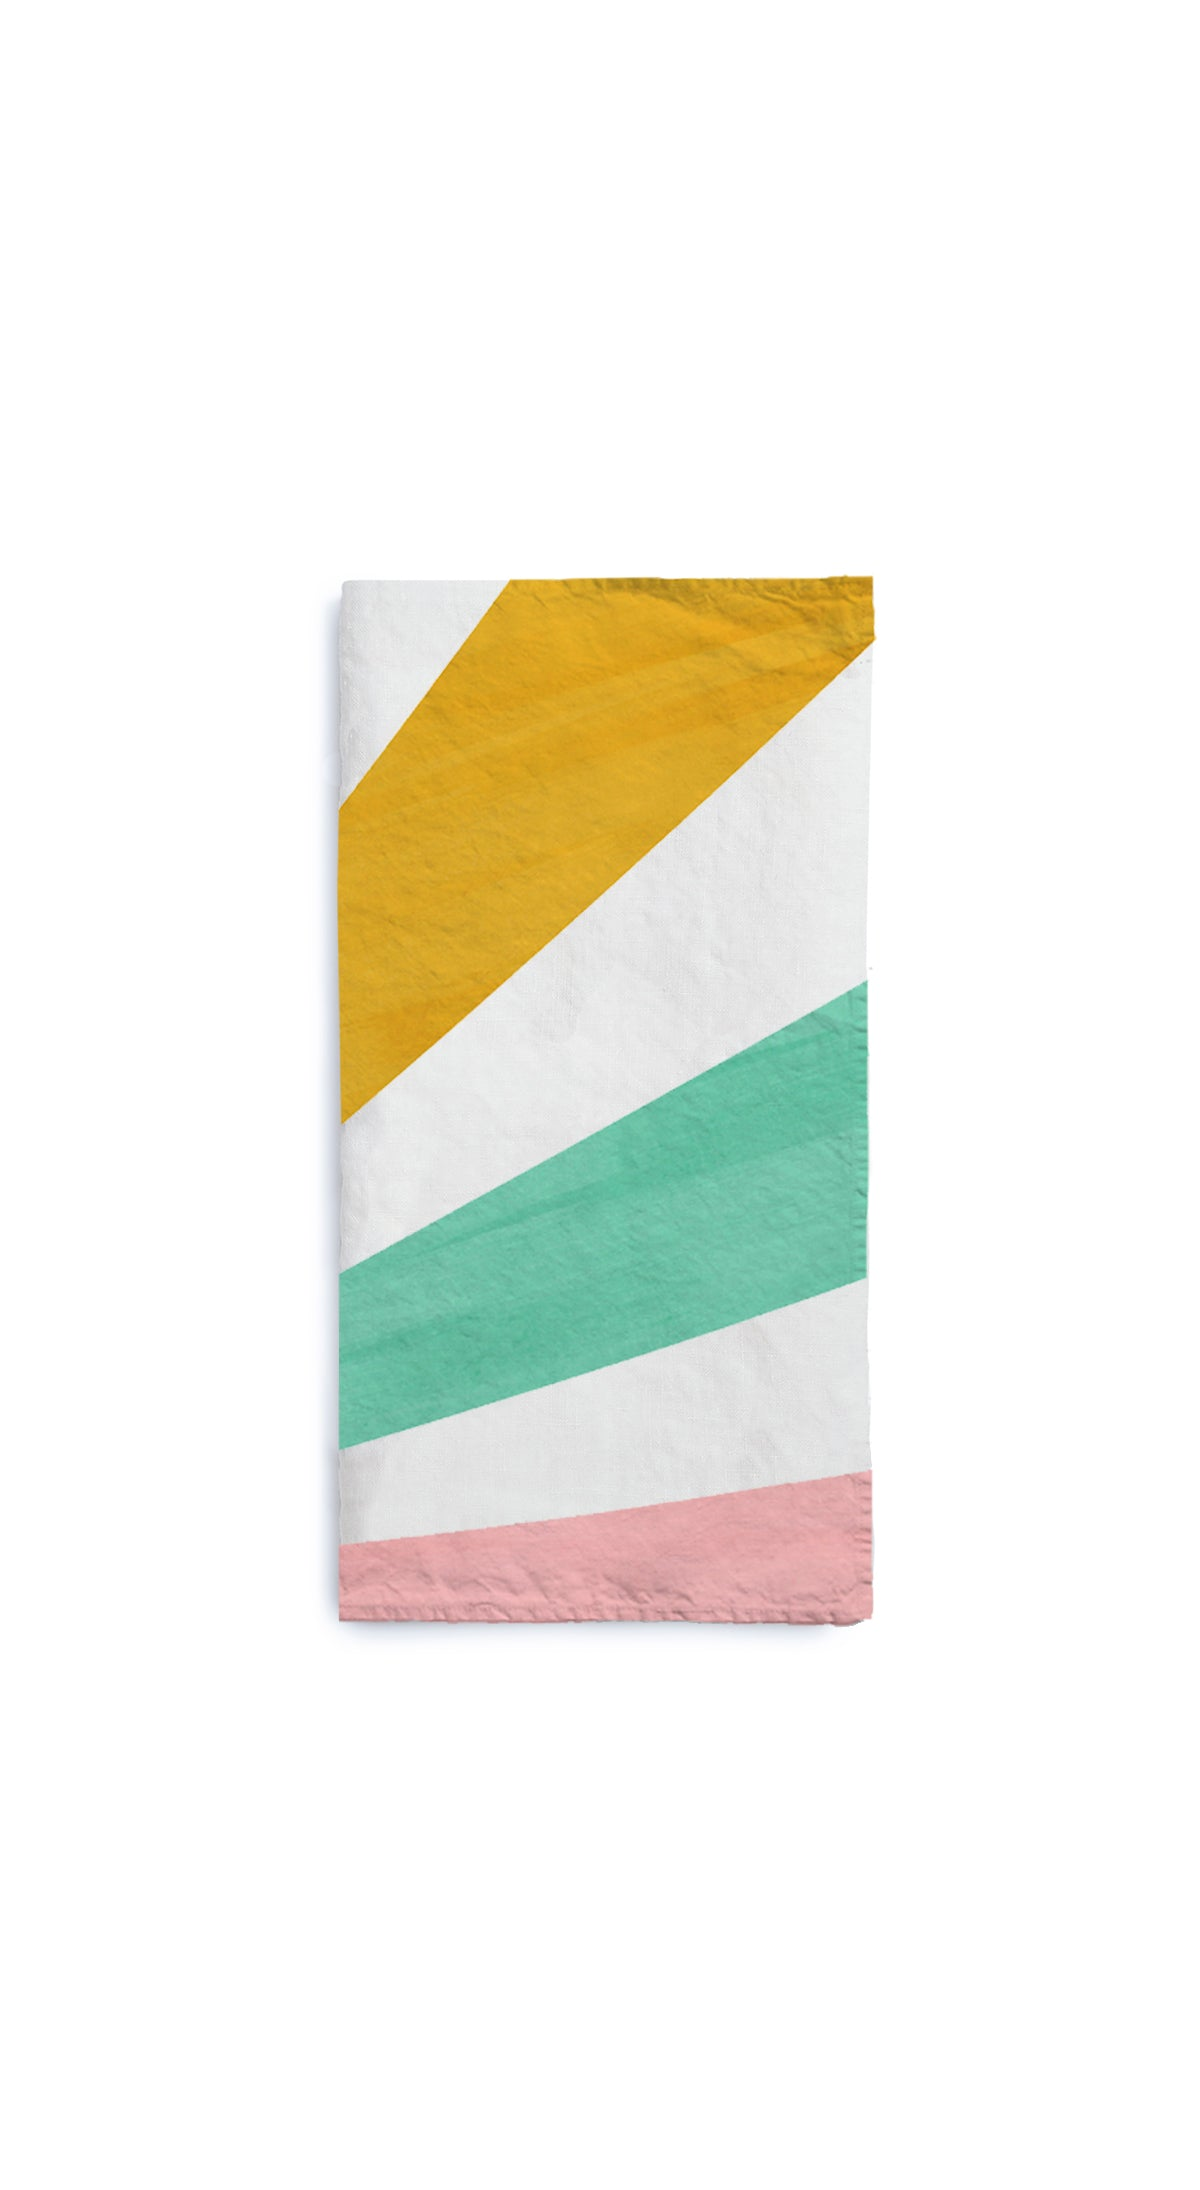 Le Cirque Linen Napkin in Multicolour